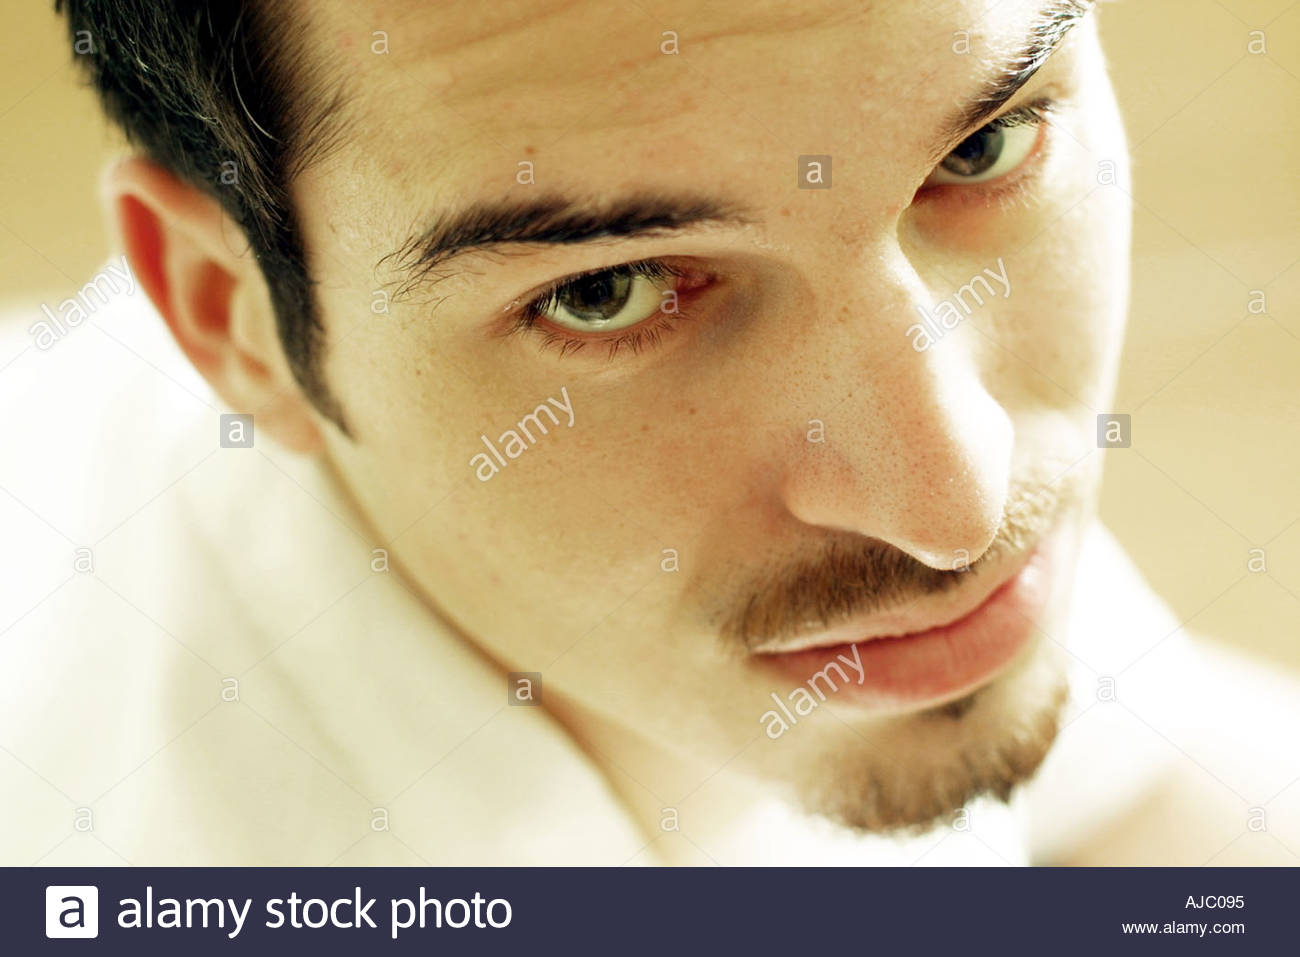 Man looking - Stock Image